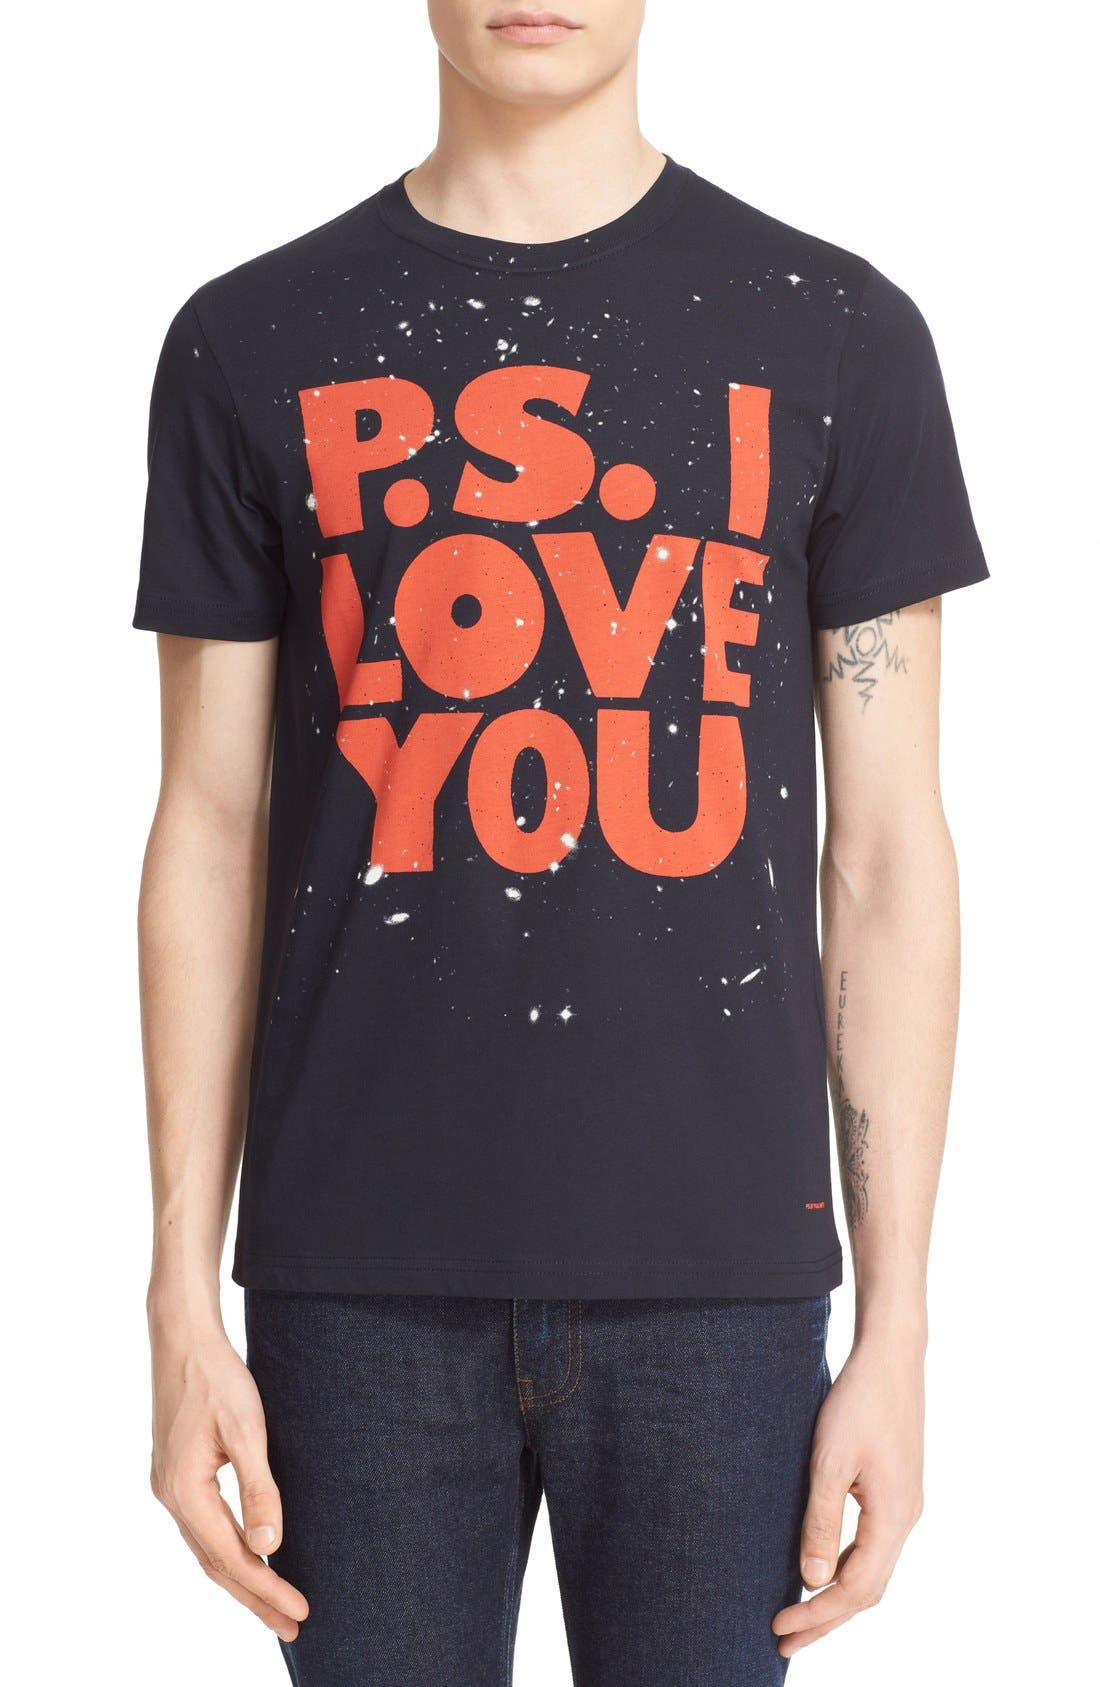 Paul Smith 'P.S. I Love You' Graphic Cotton T-Shirt, Main, color, 414